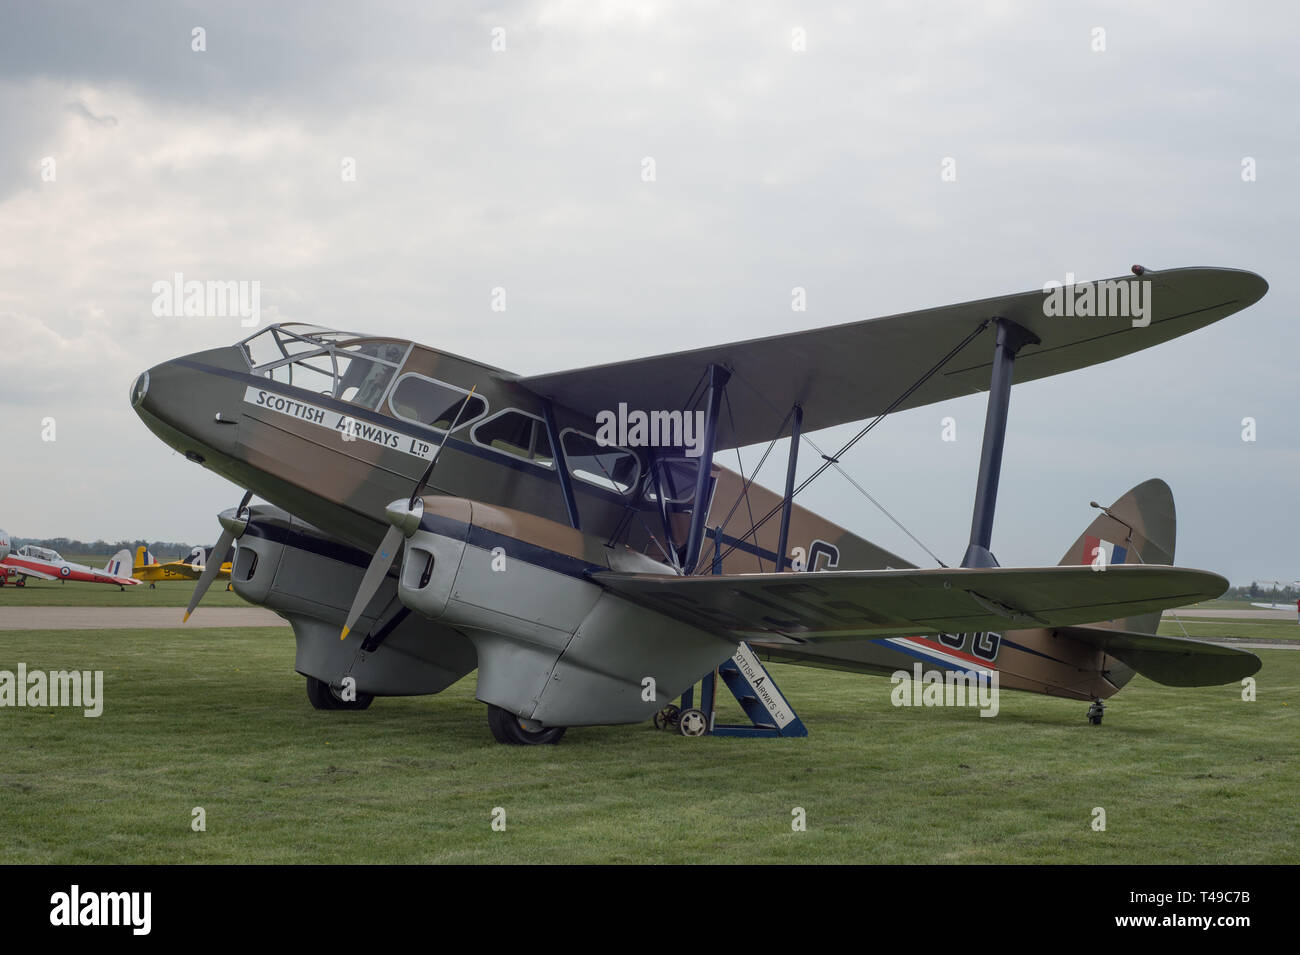 Ade Havilland Dragon Rapide painted in Scottish Airways livery at the Duxford Imperial War museum. A plane from the 1930s produced in Britain. - Stock Image